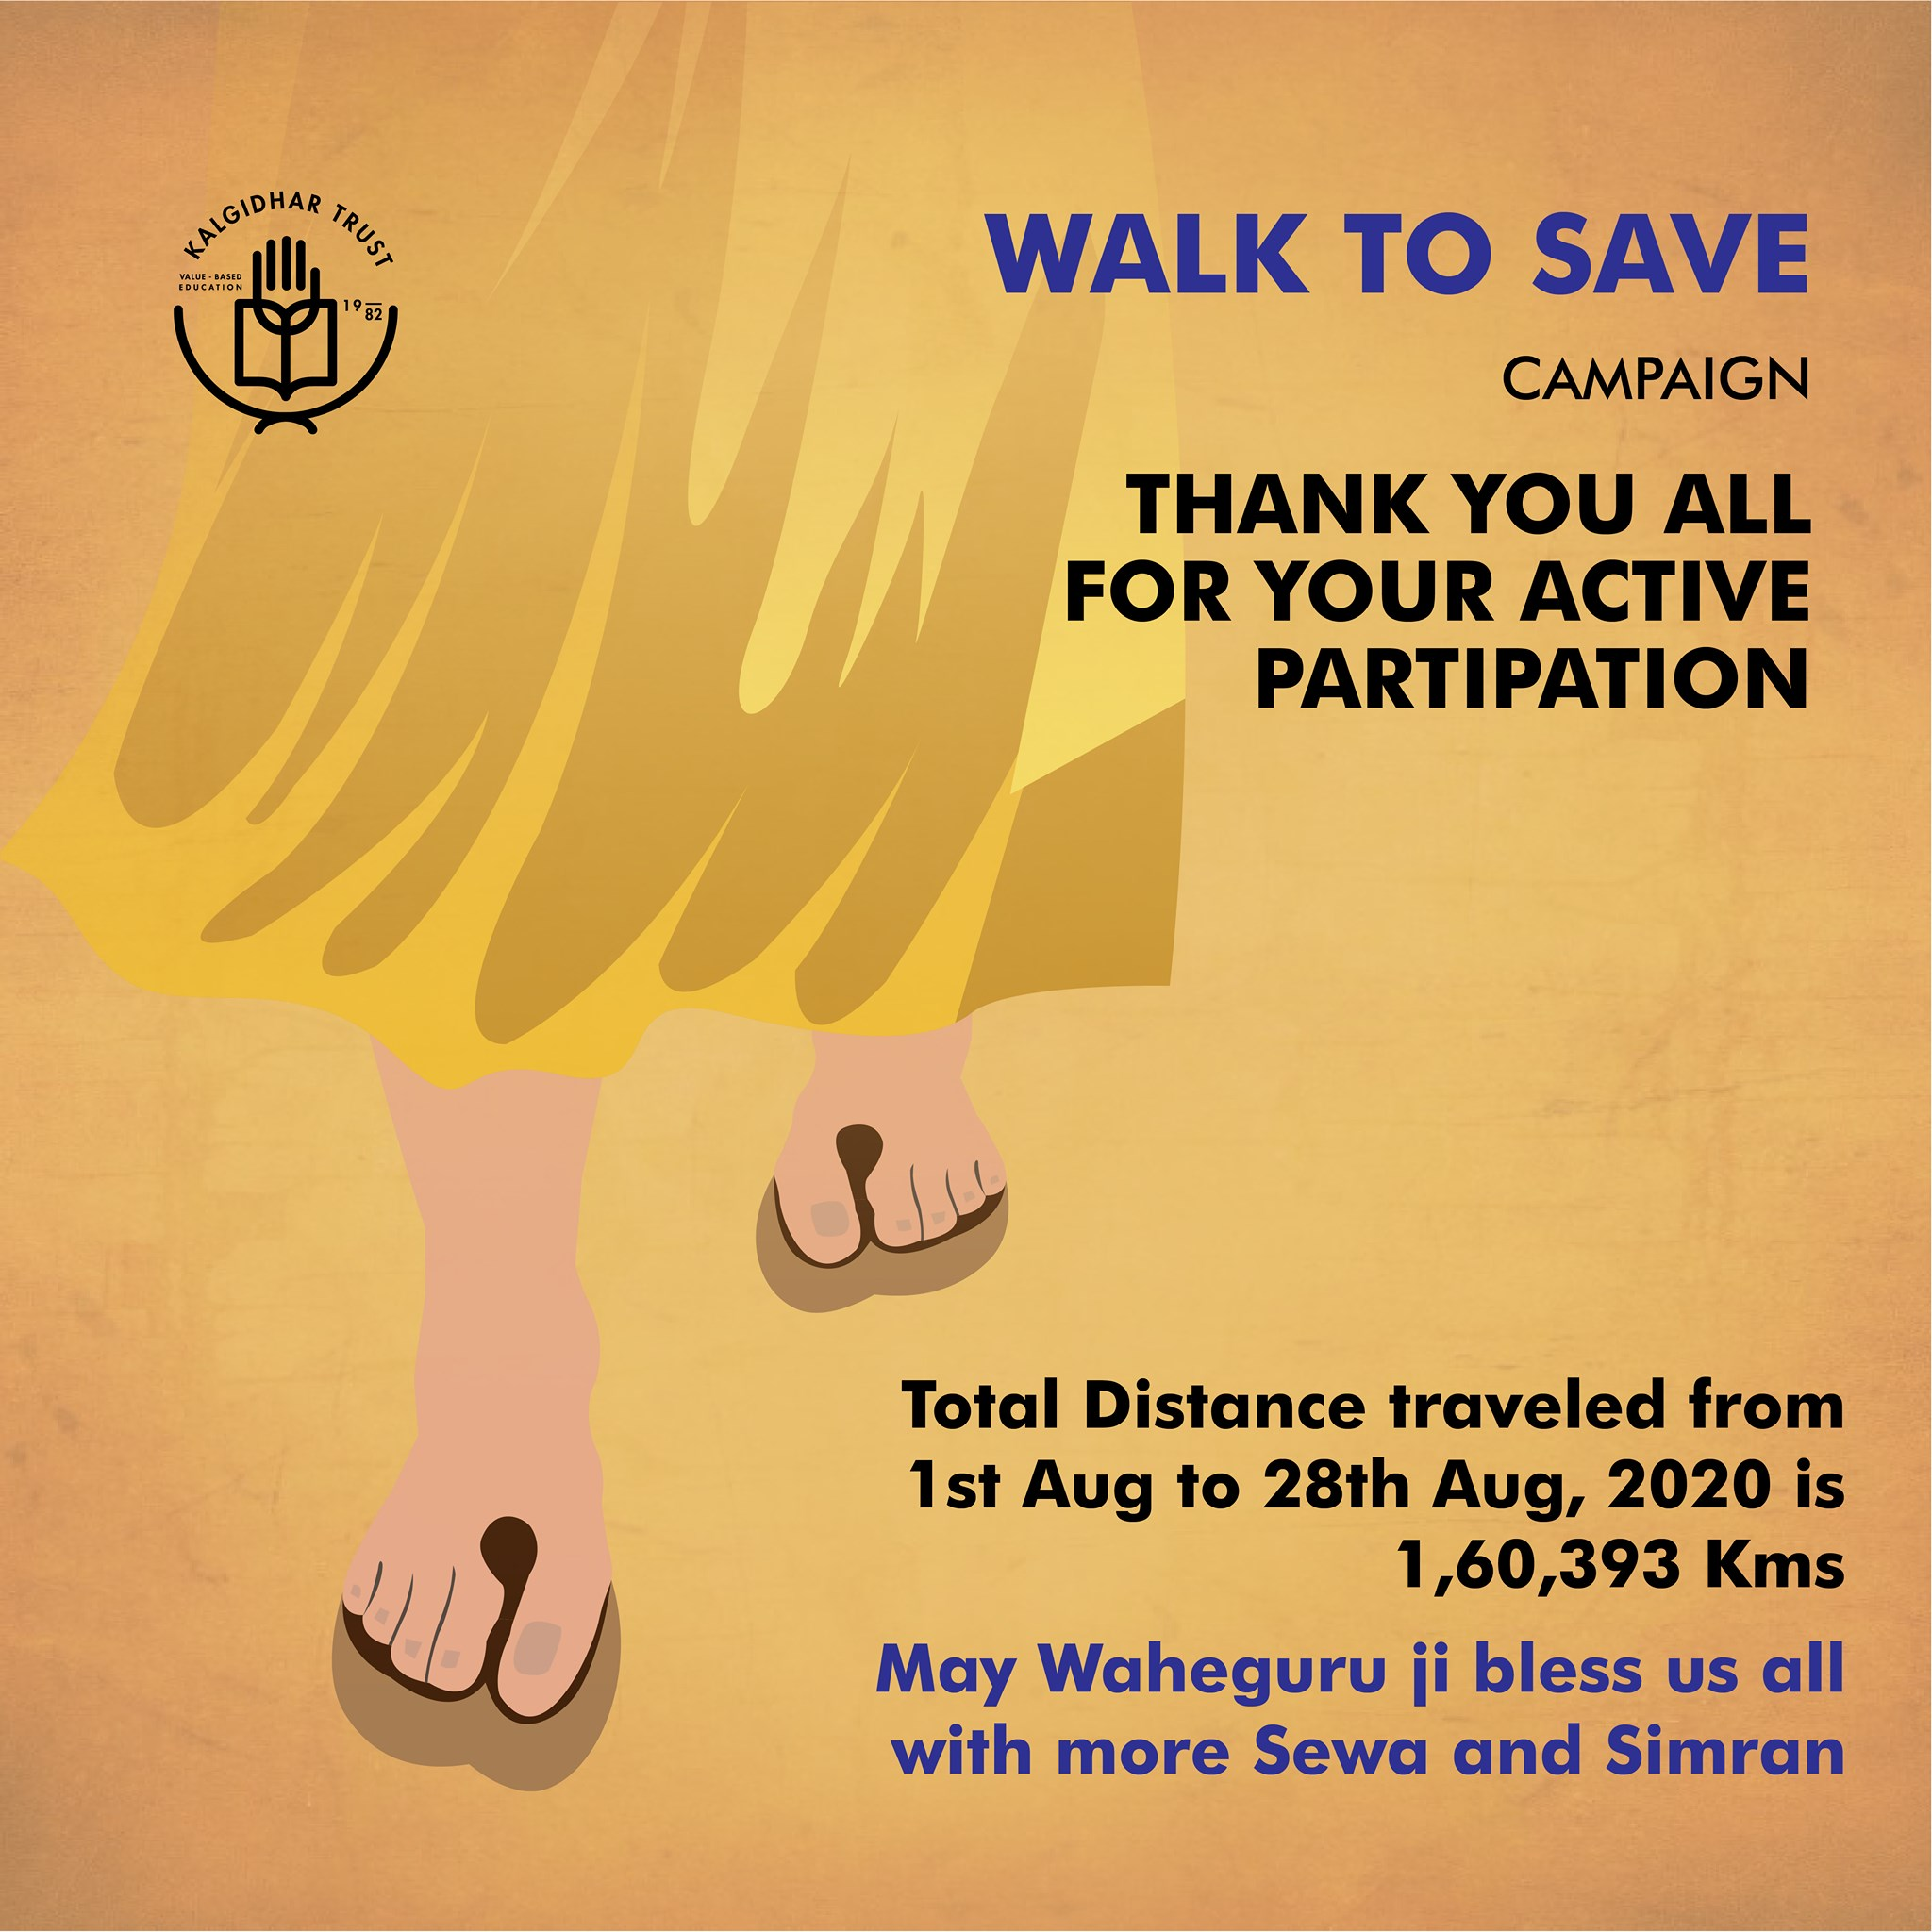 Walk to Save Campaign